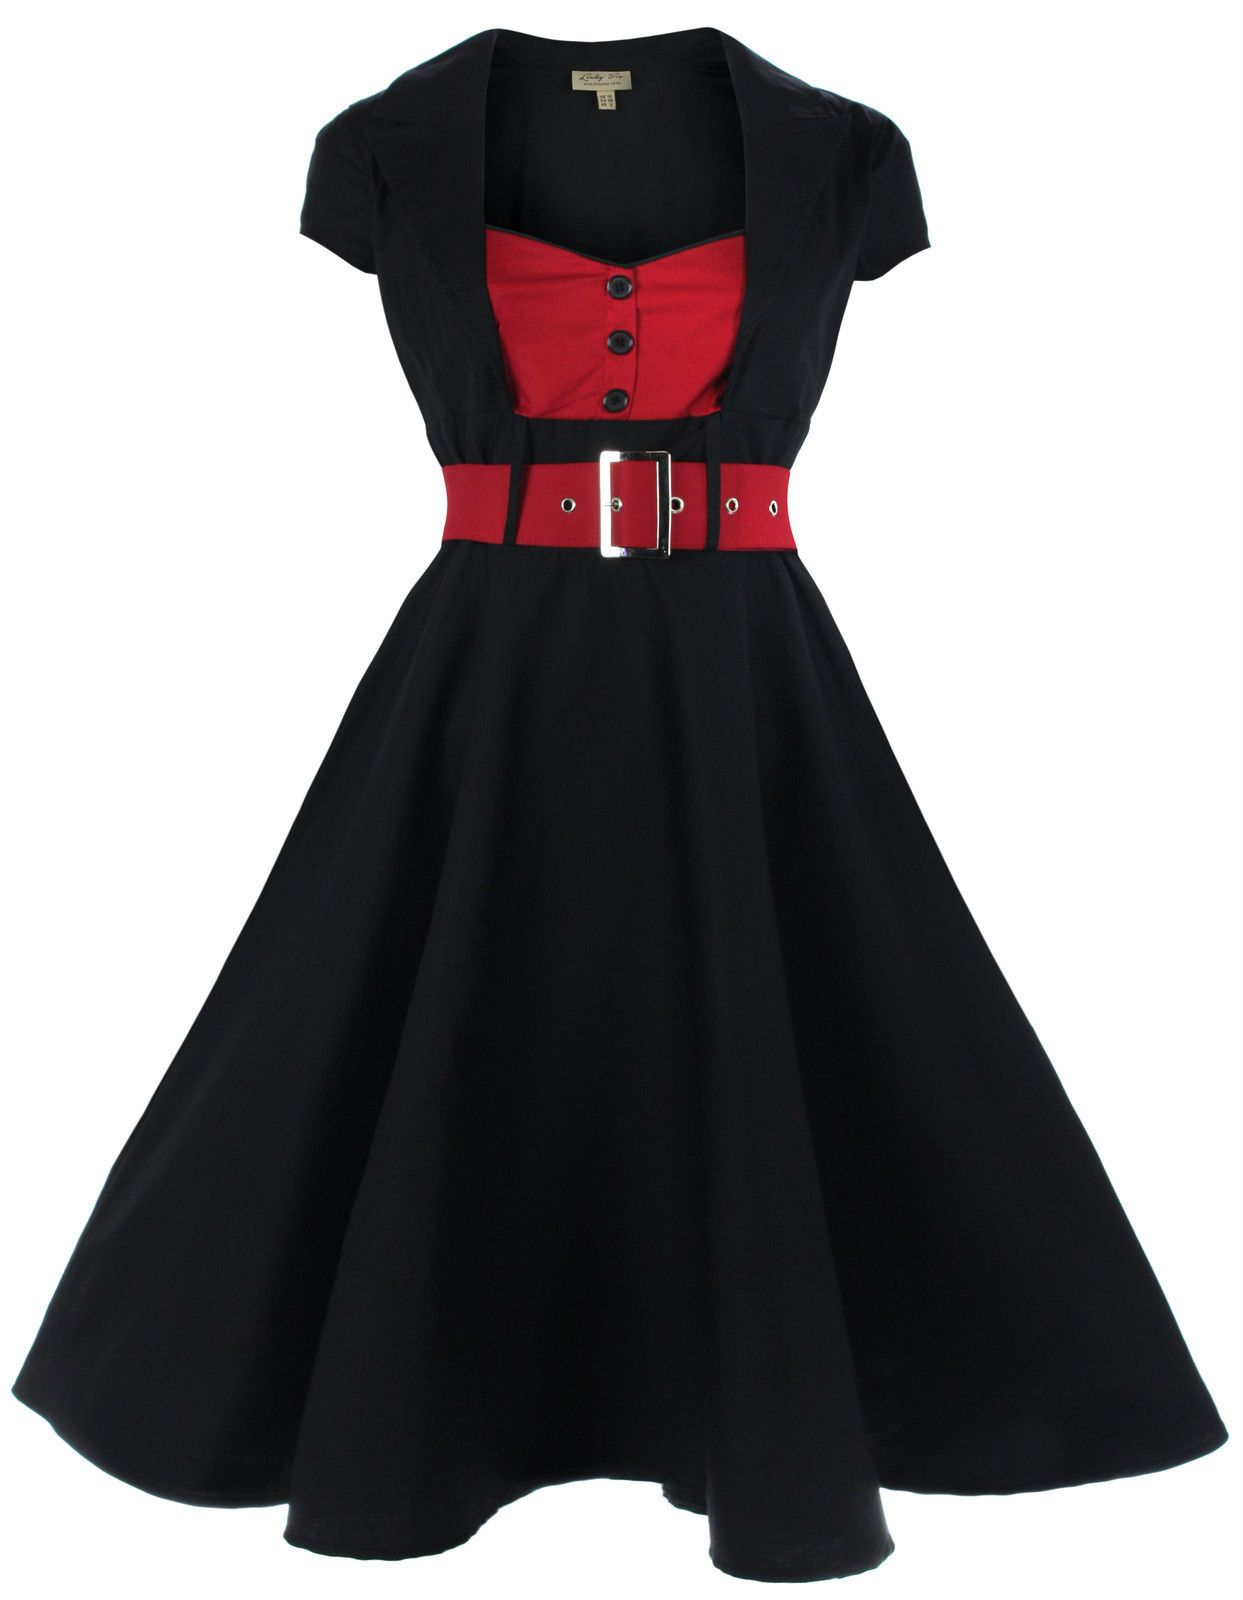 366de709aeed Lindy Bop Classy Vintage 1950 s Rockabilly Pinup Flared Swing Evening Dress